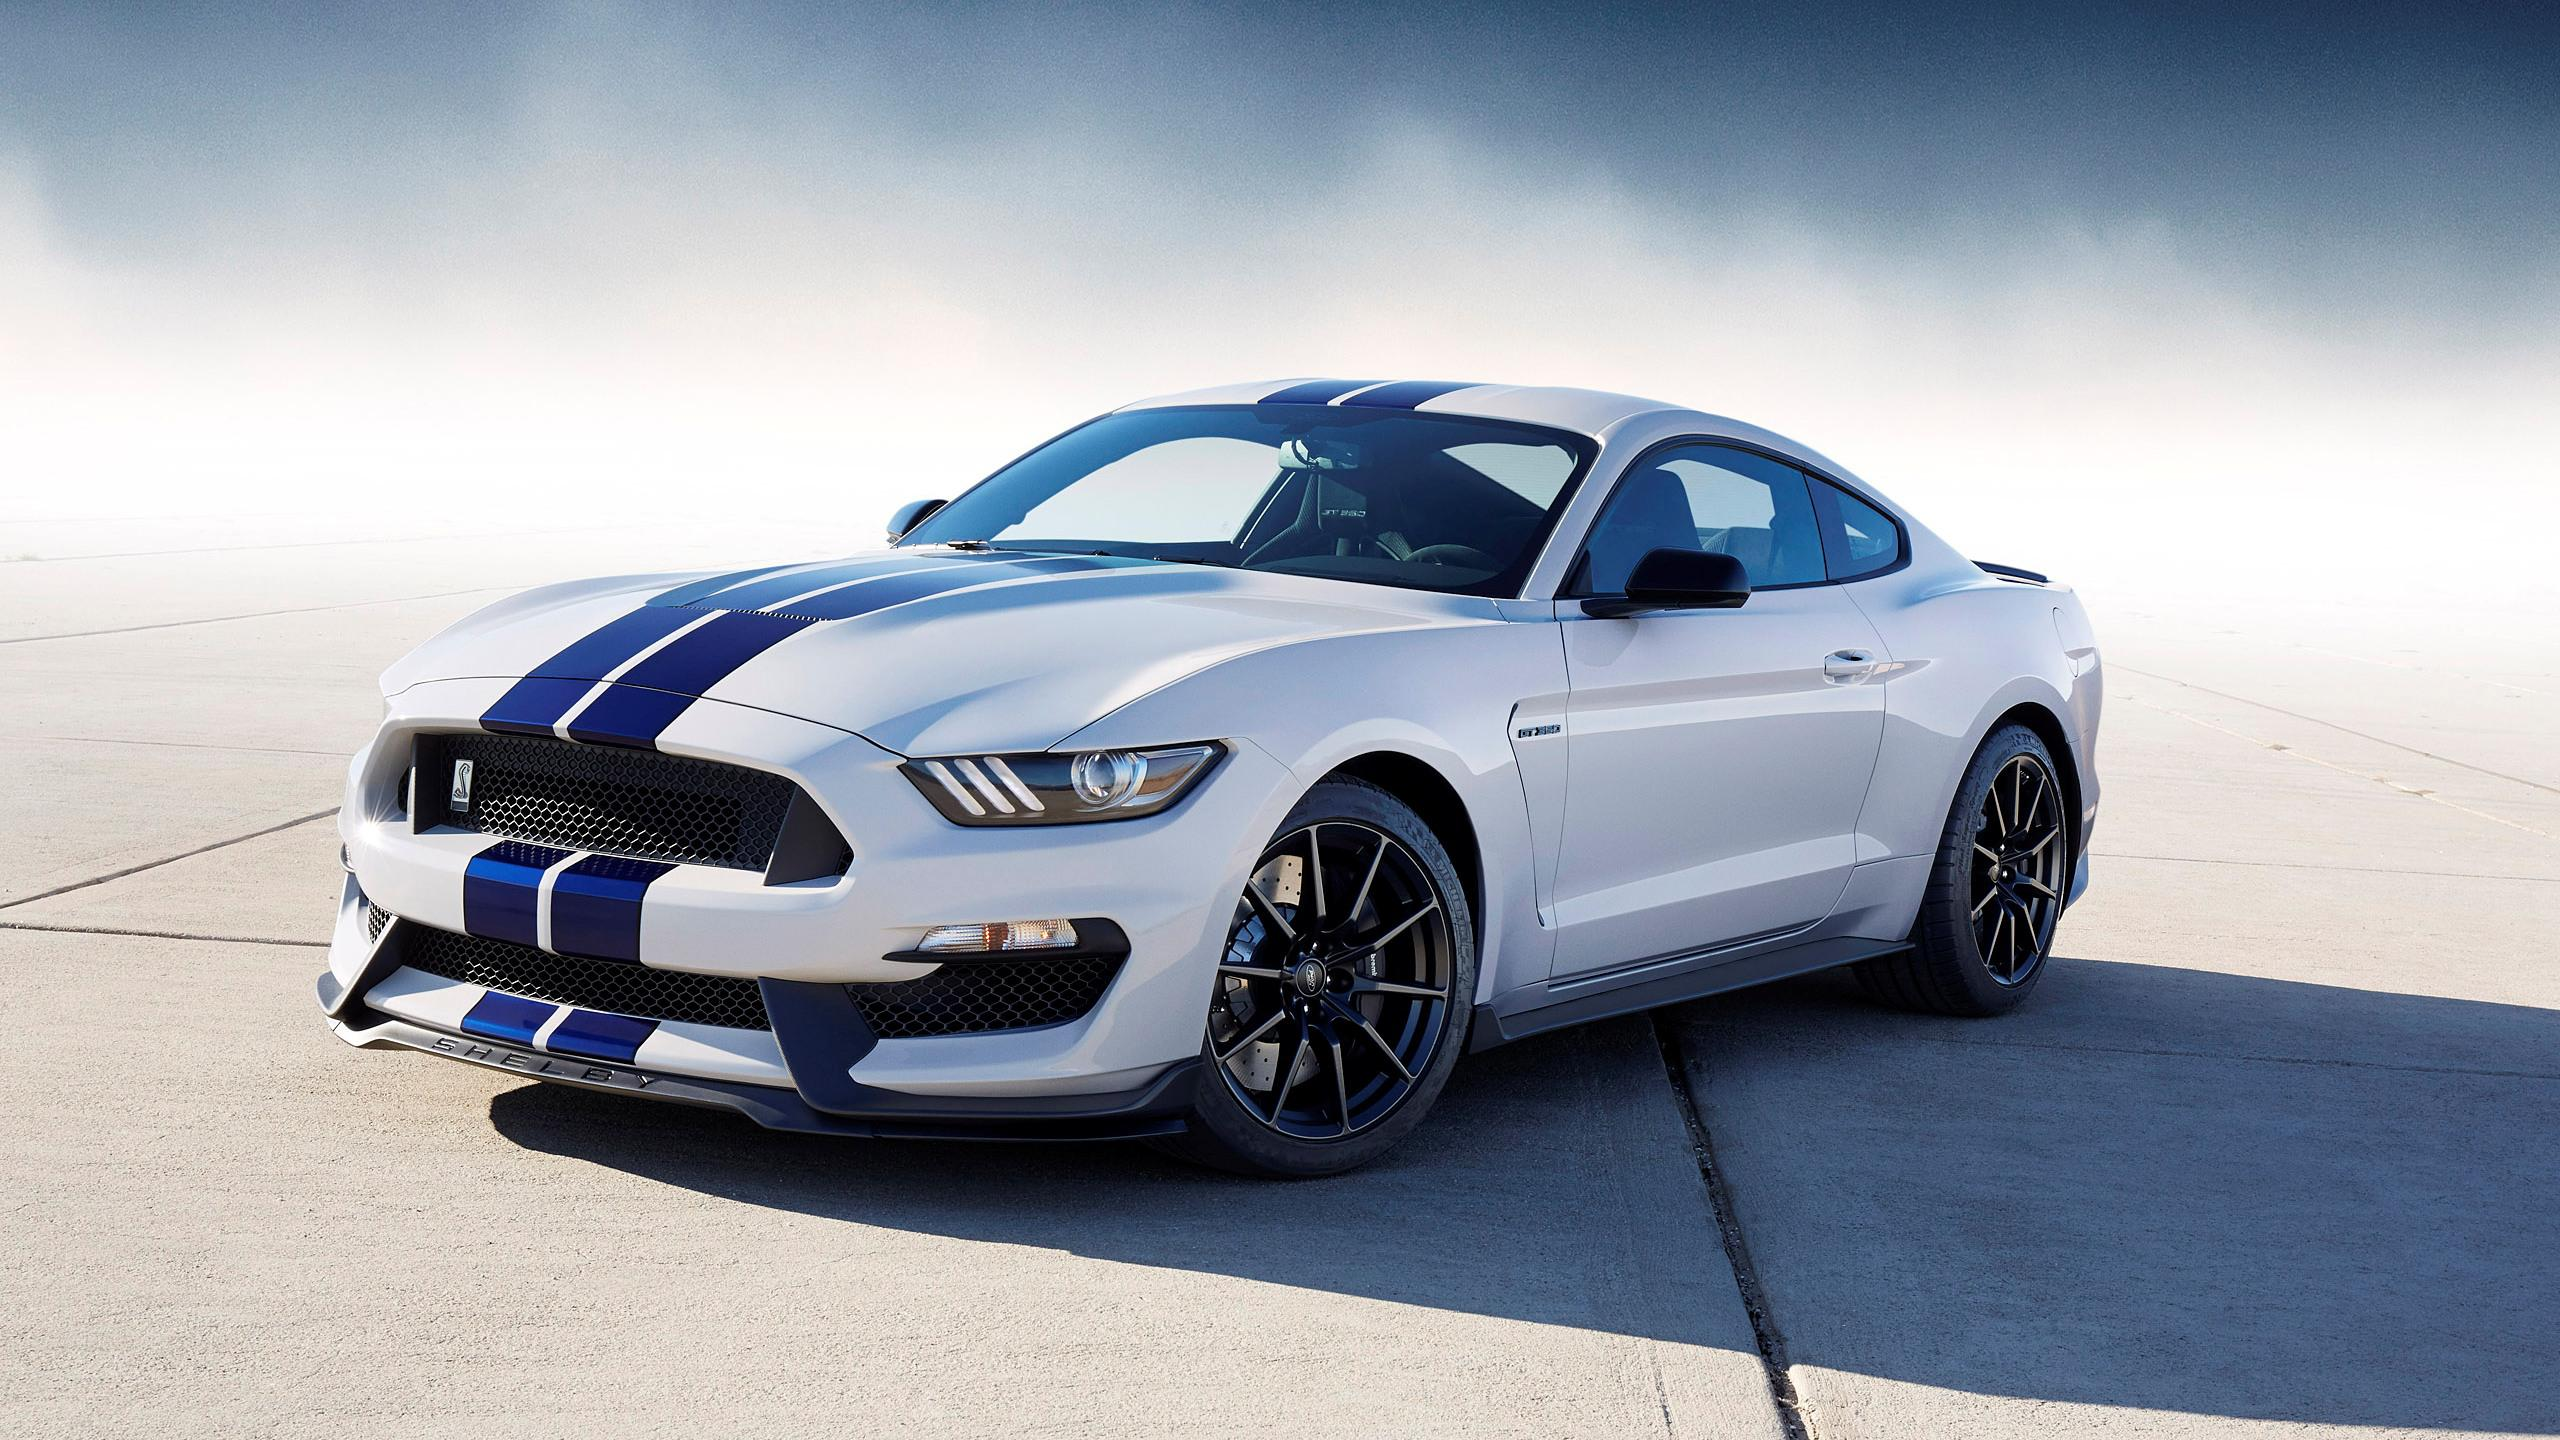 2560x1440 Ford-shelby-mustang-free-download | wallpaper.wiki